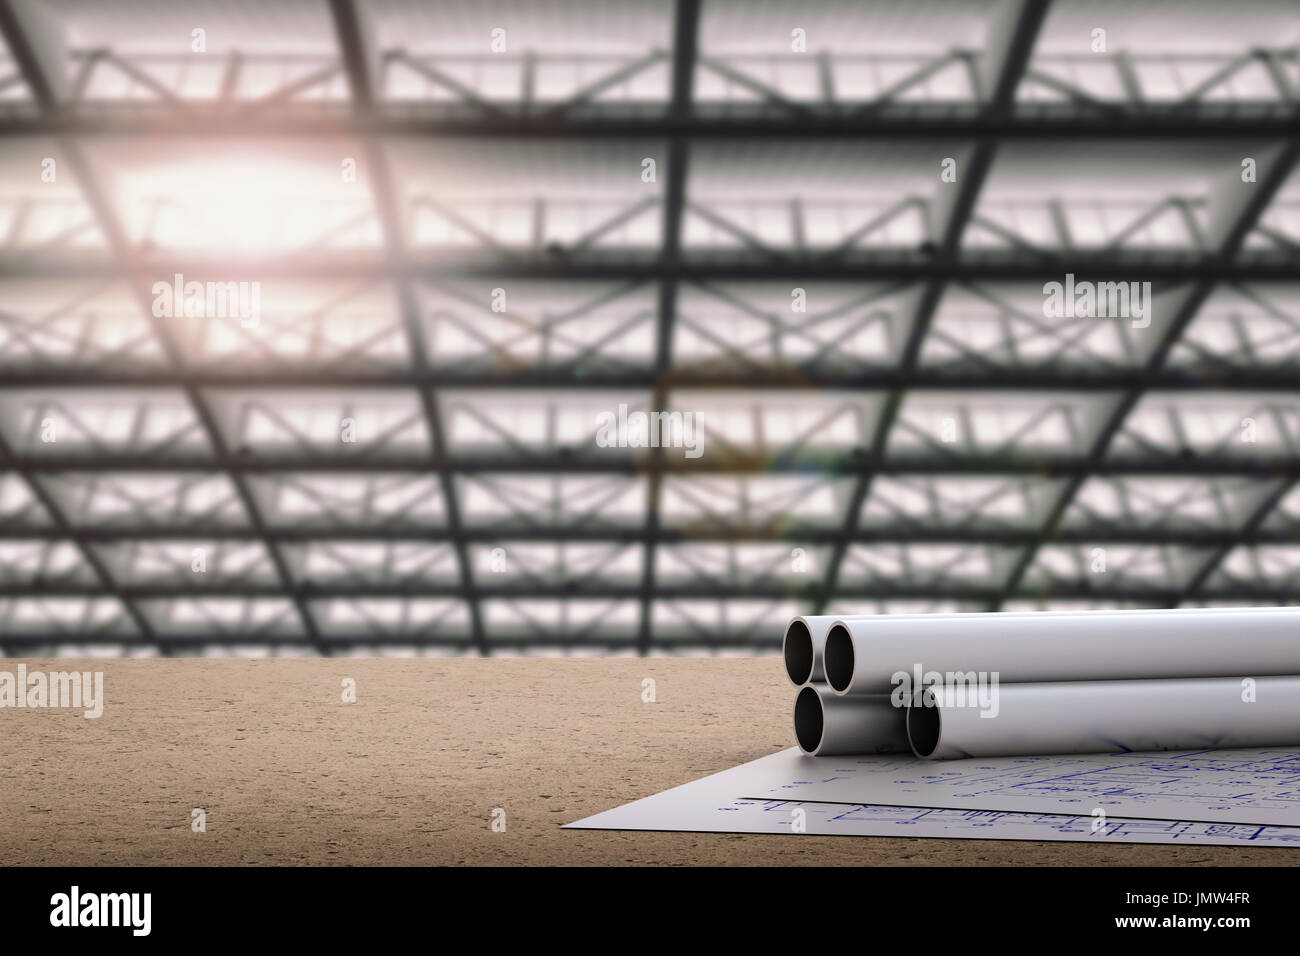 Civil engineer concept with metal pipes and blueprint paper stock civil engineer concept with metal pipes and blueprint paper malvernweather Image collections